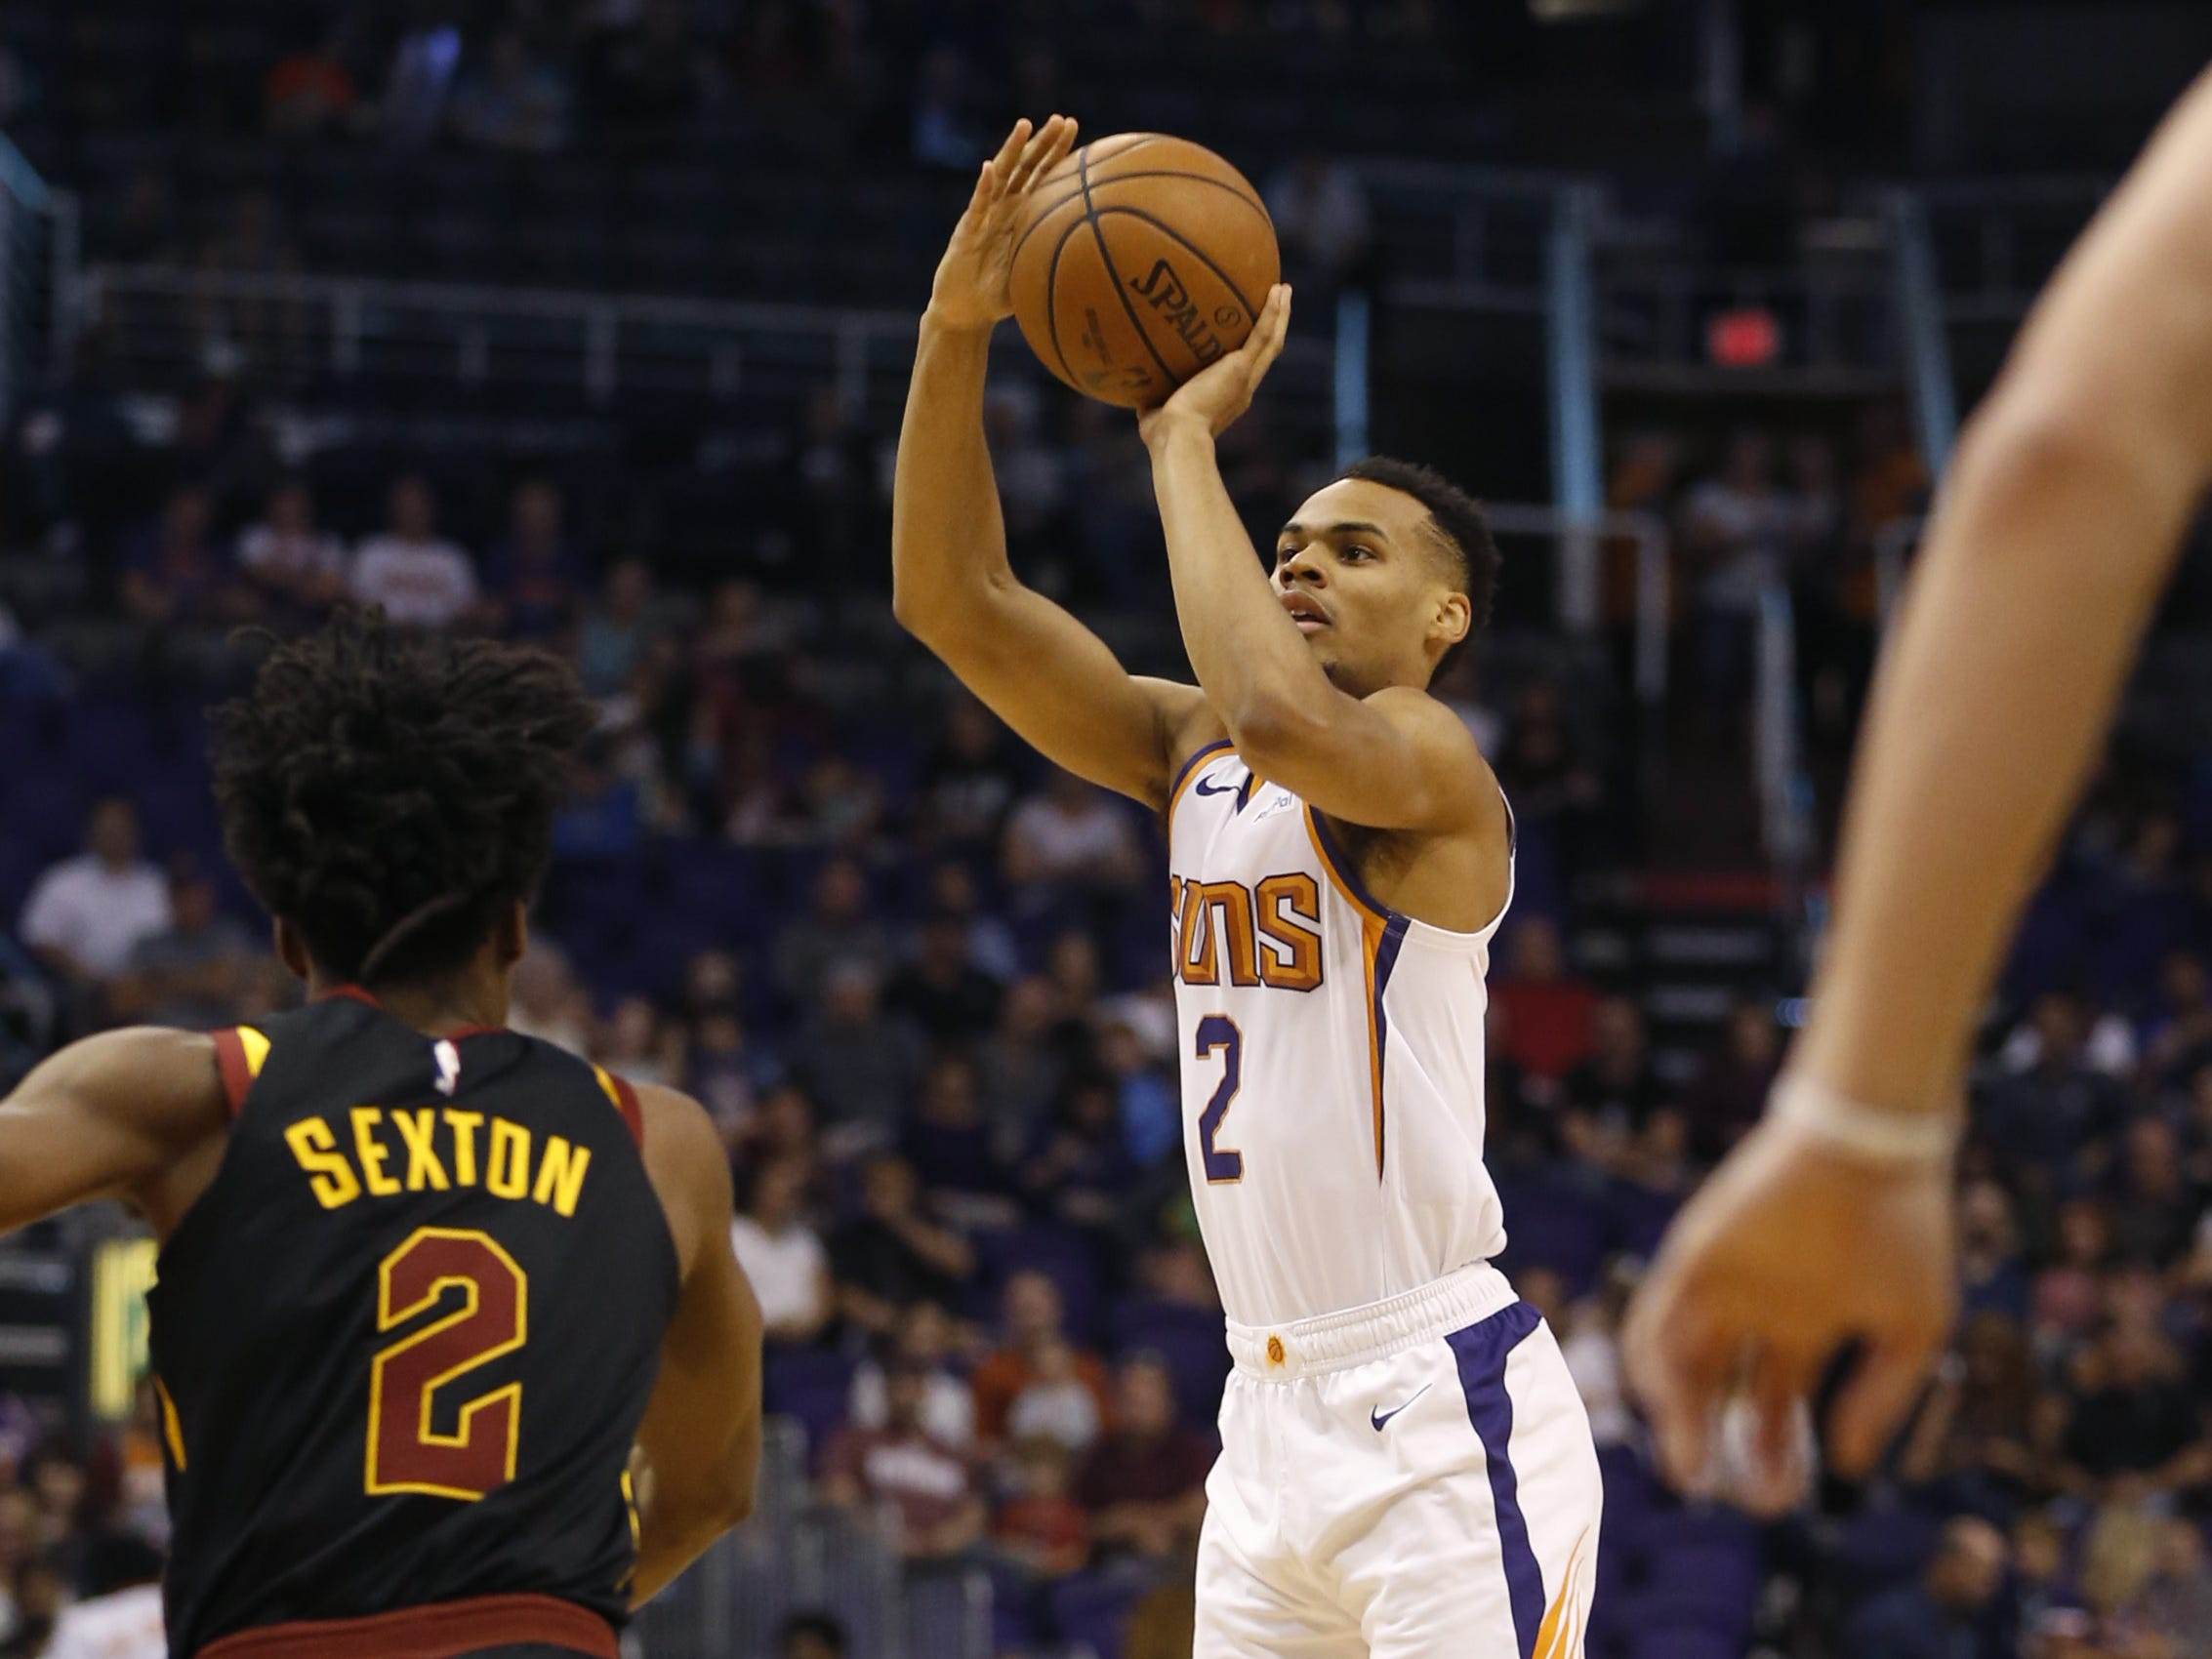 Suns' Elie Okobo (2) hits a three pointer against Cavaliers' Collin Sexton (2) during the first half at Talking Stick Resort Arena in Phoenix, Ariz. on April 1, 2019.